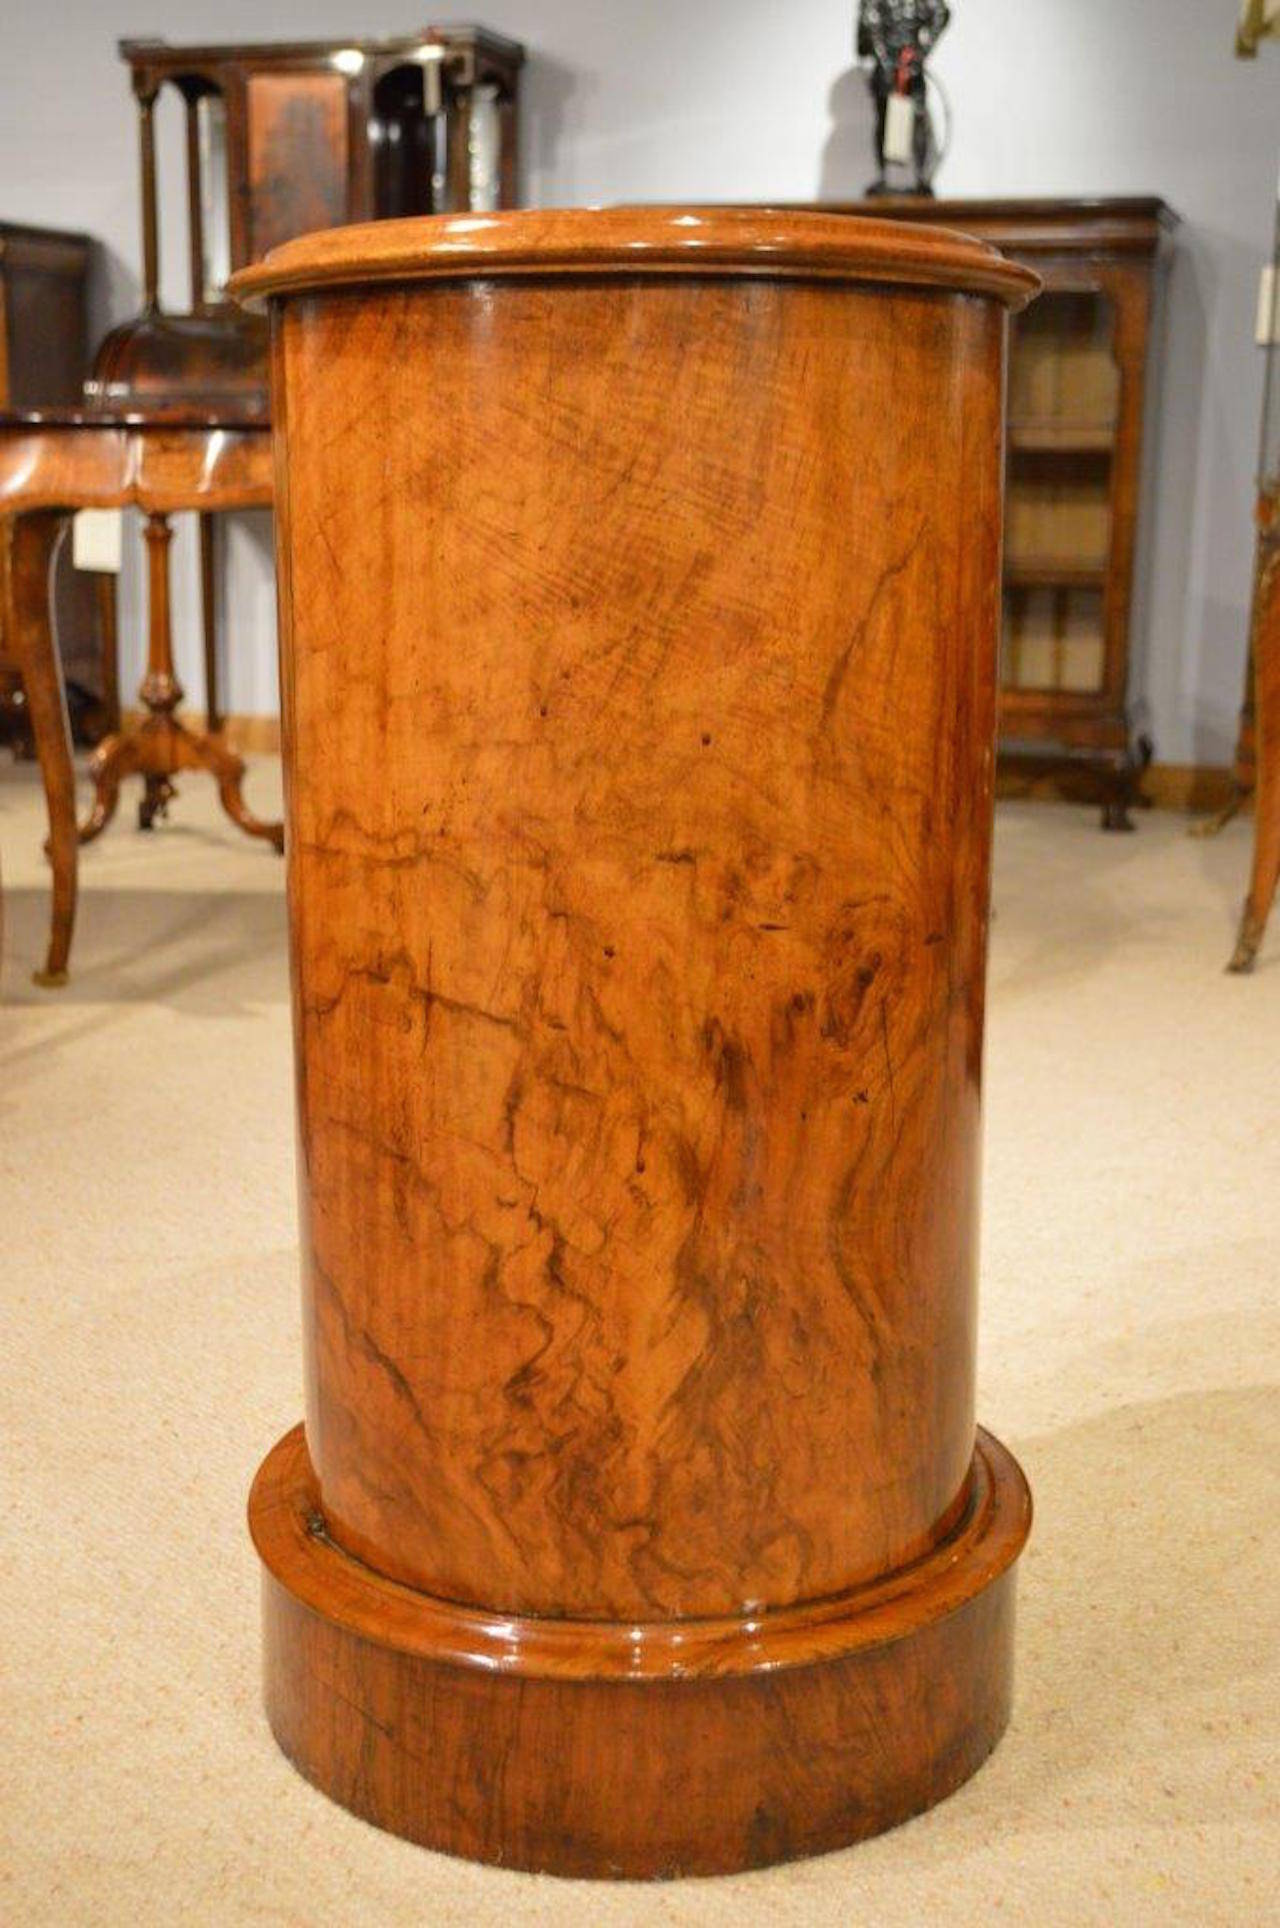 Figured Walnut Victorian Period Cylindrical Antique Bedside Cabinet In  Excellent Condition For Sale In Darwen, - Figured Walnut Victorian Period Cylindrical Antique Bedside Cabinet